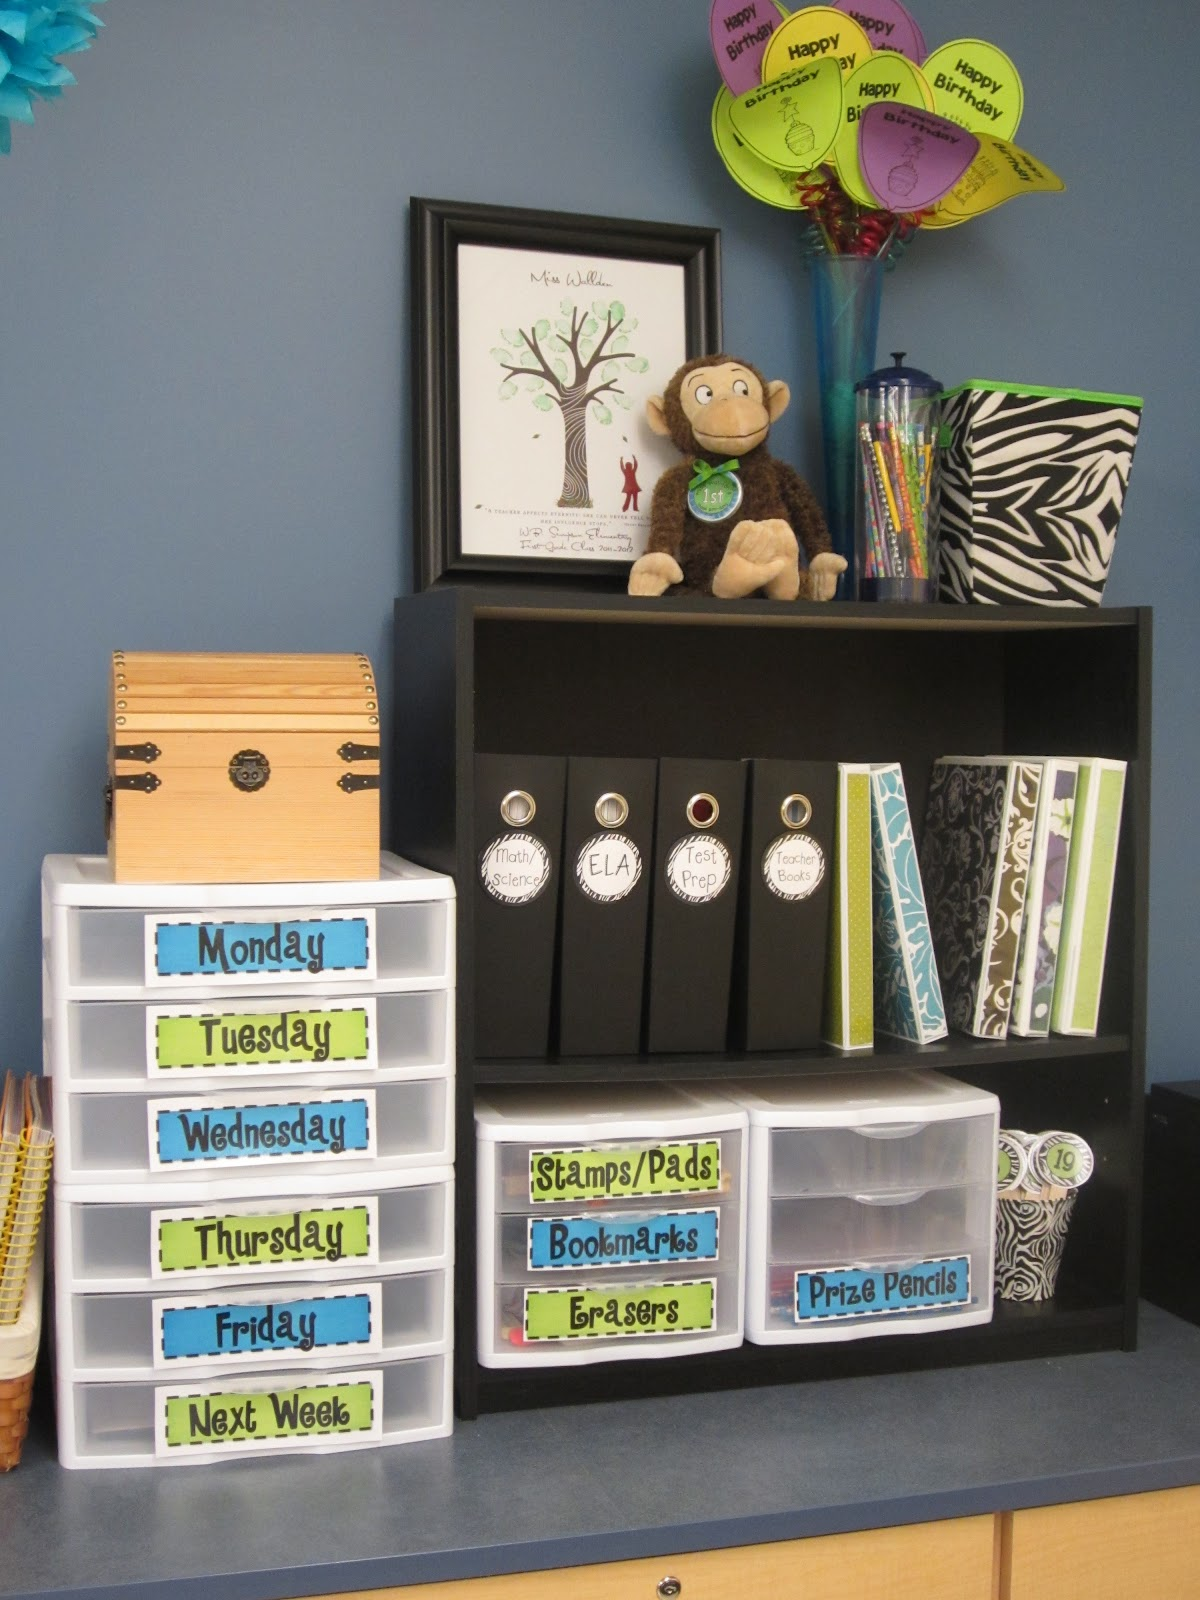 Teaching Ideas In The Classroom ~ The creative chalkboard classroom tour pictures galore